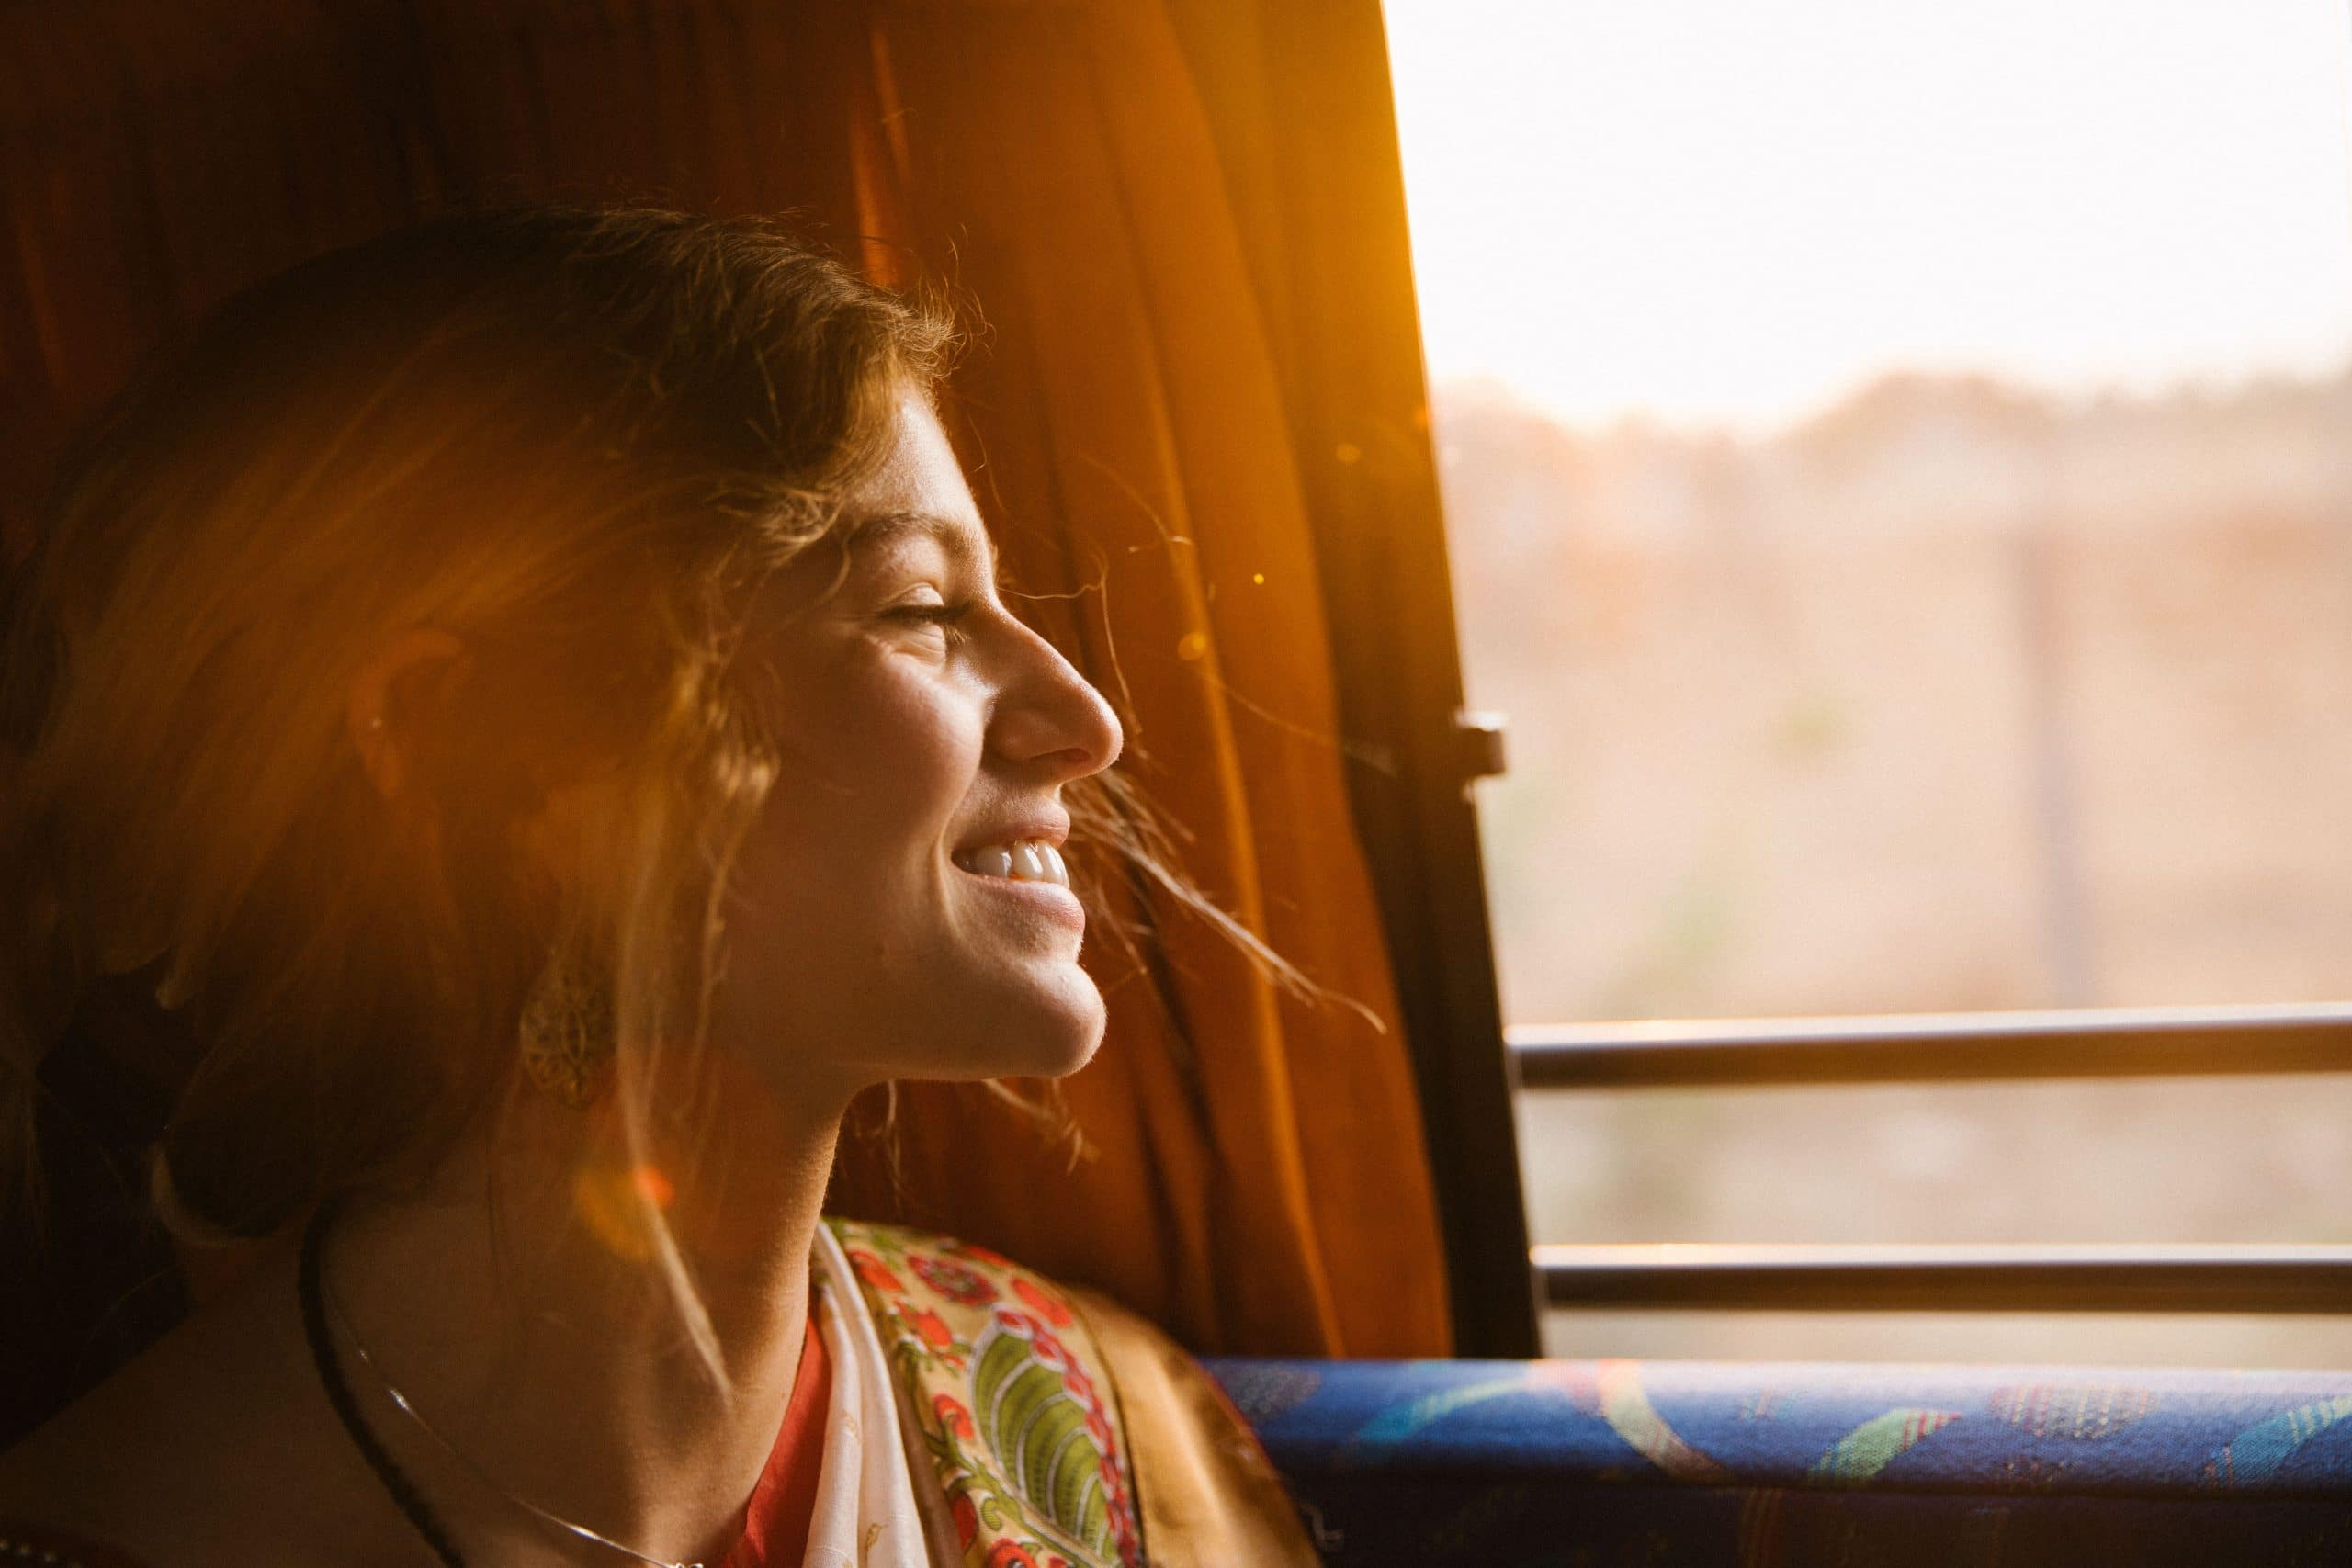 A lady smiling looking out a window.